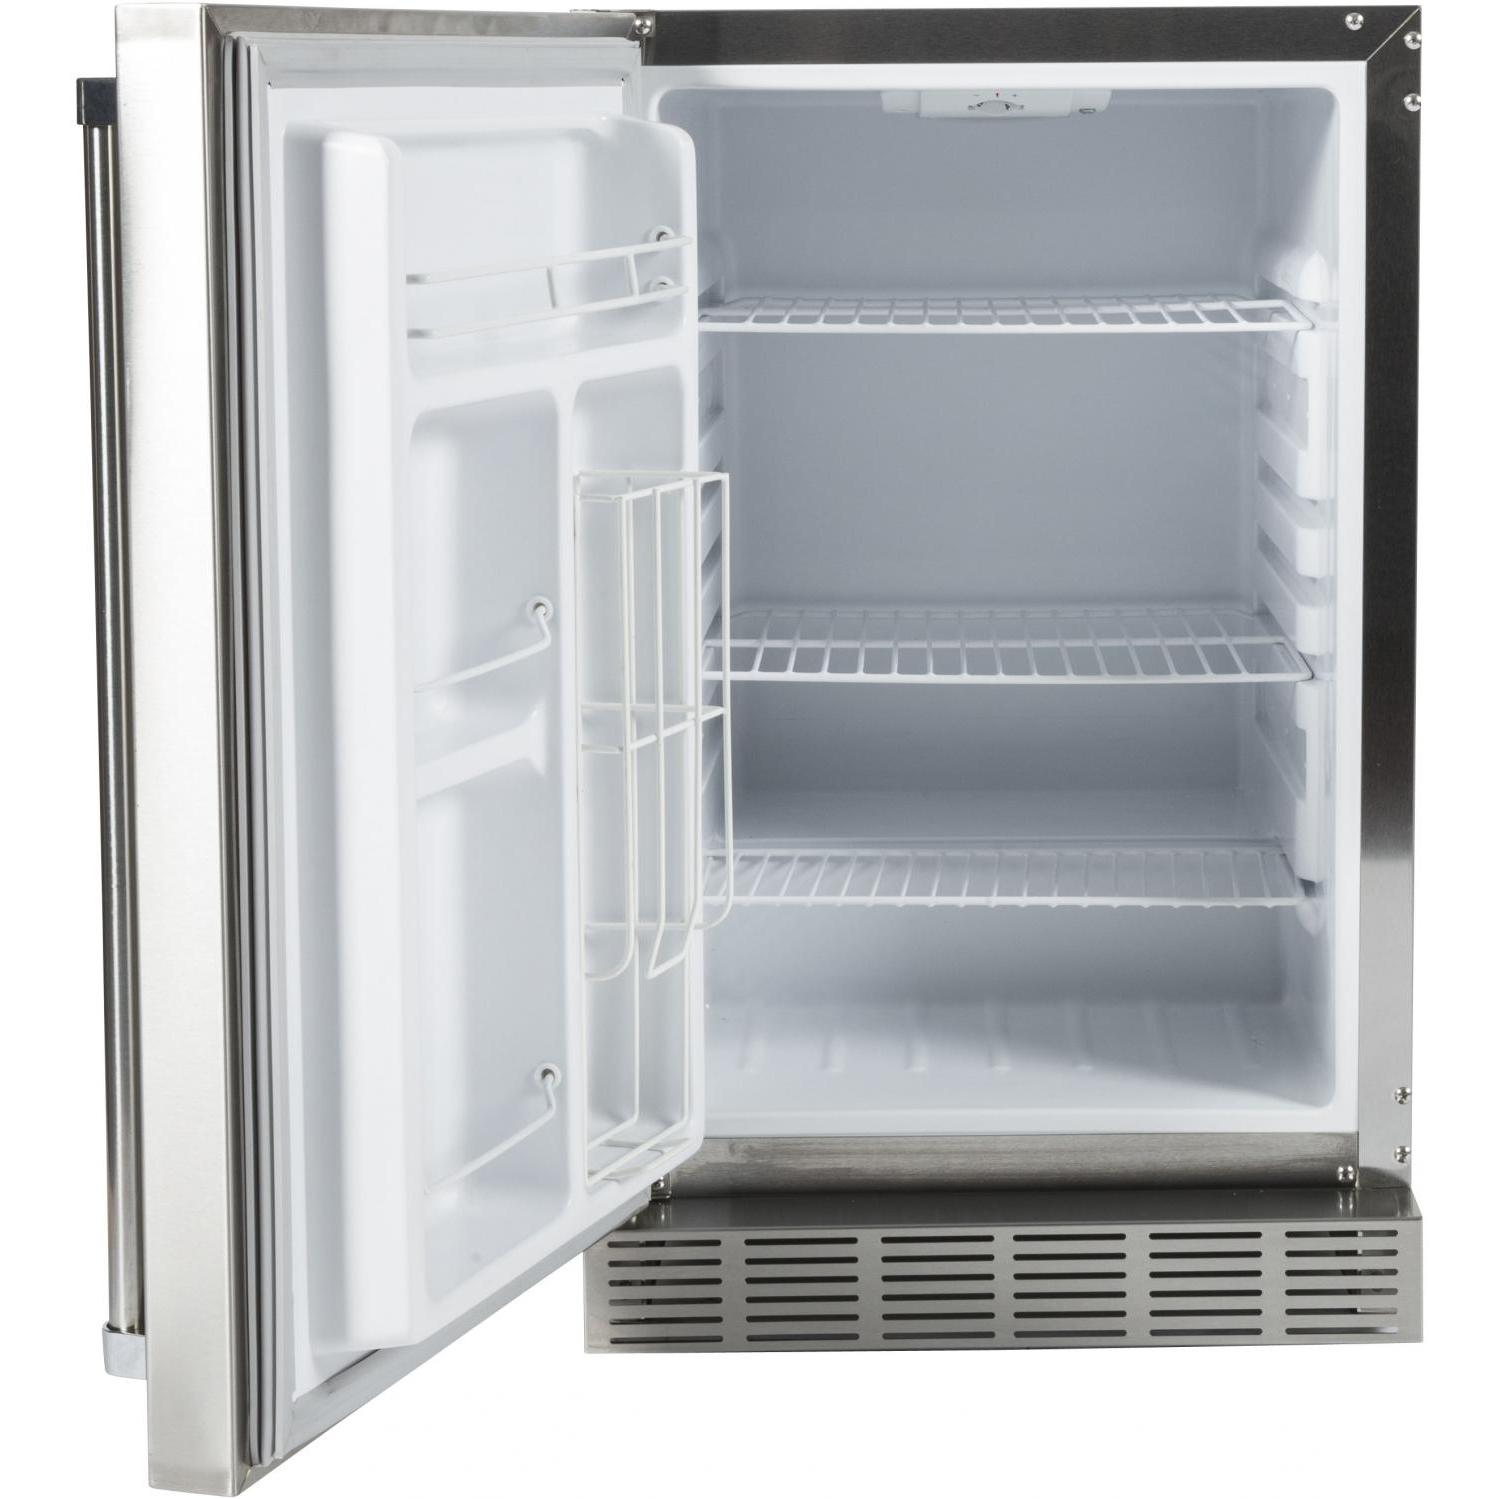 Coyote 21-Inch 4.1 Cu. Ft. Refrigerator - Outdoor Florida Kitchens